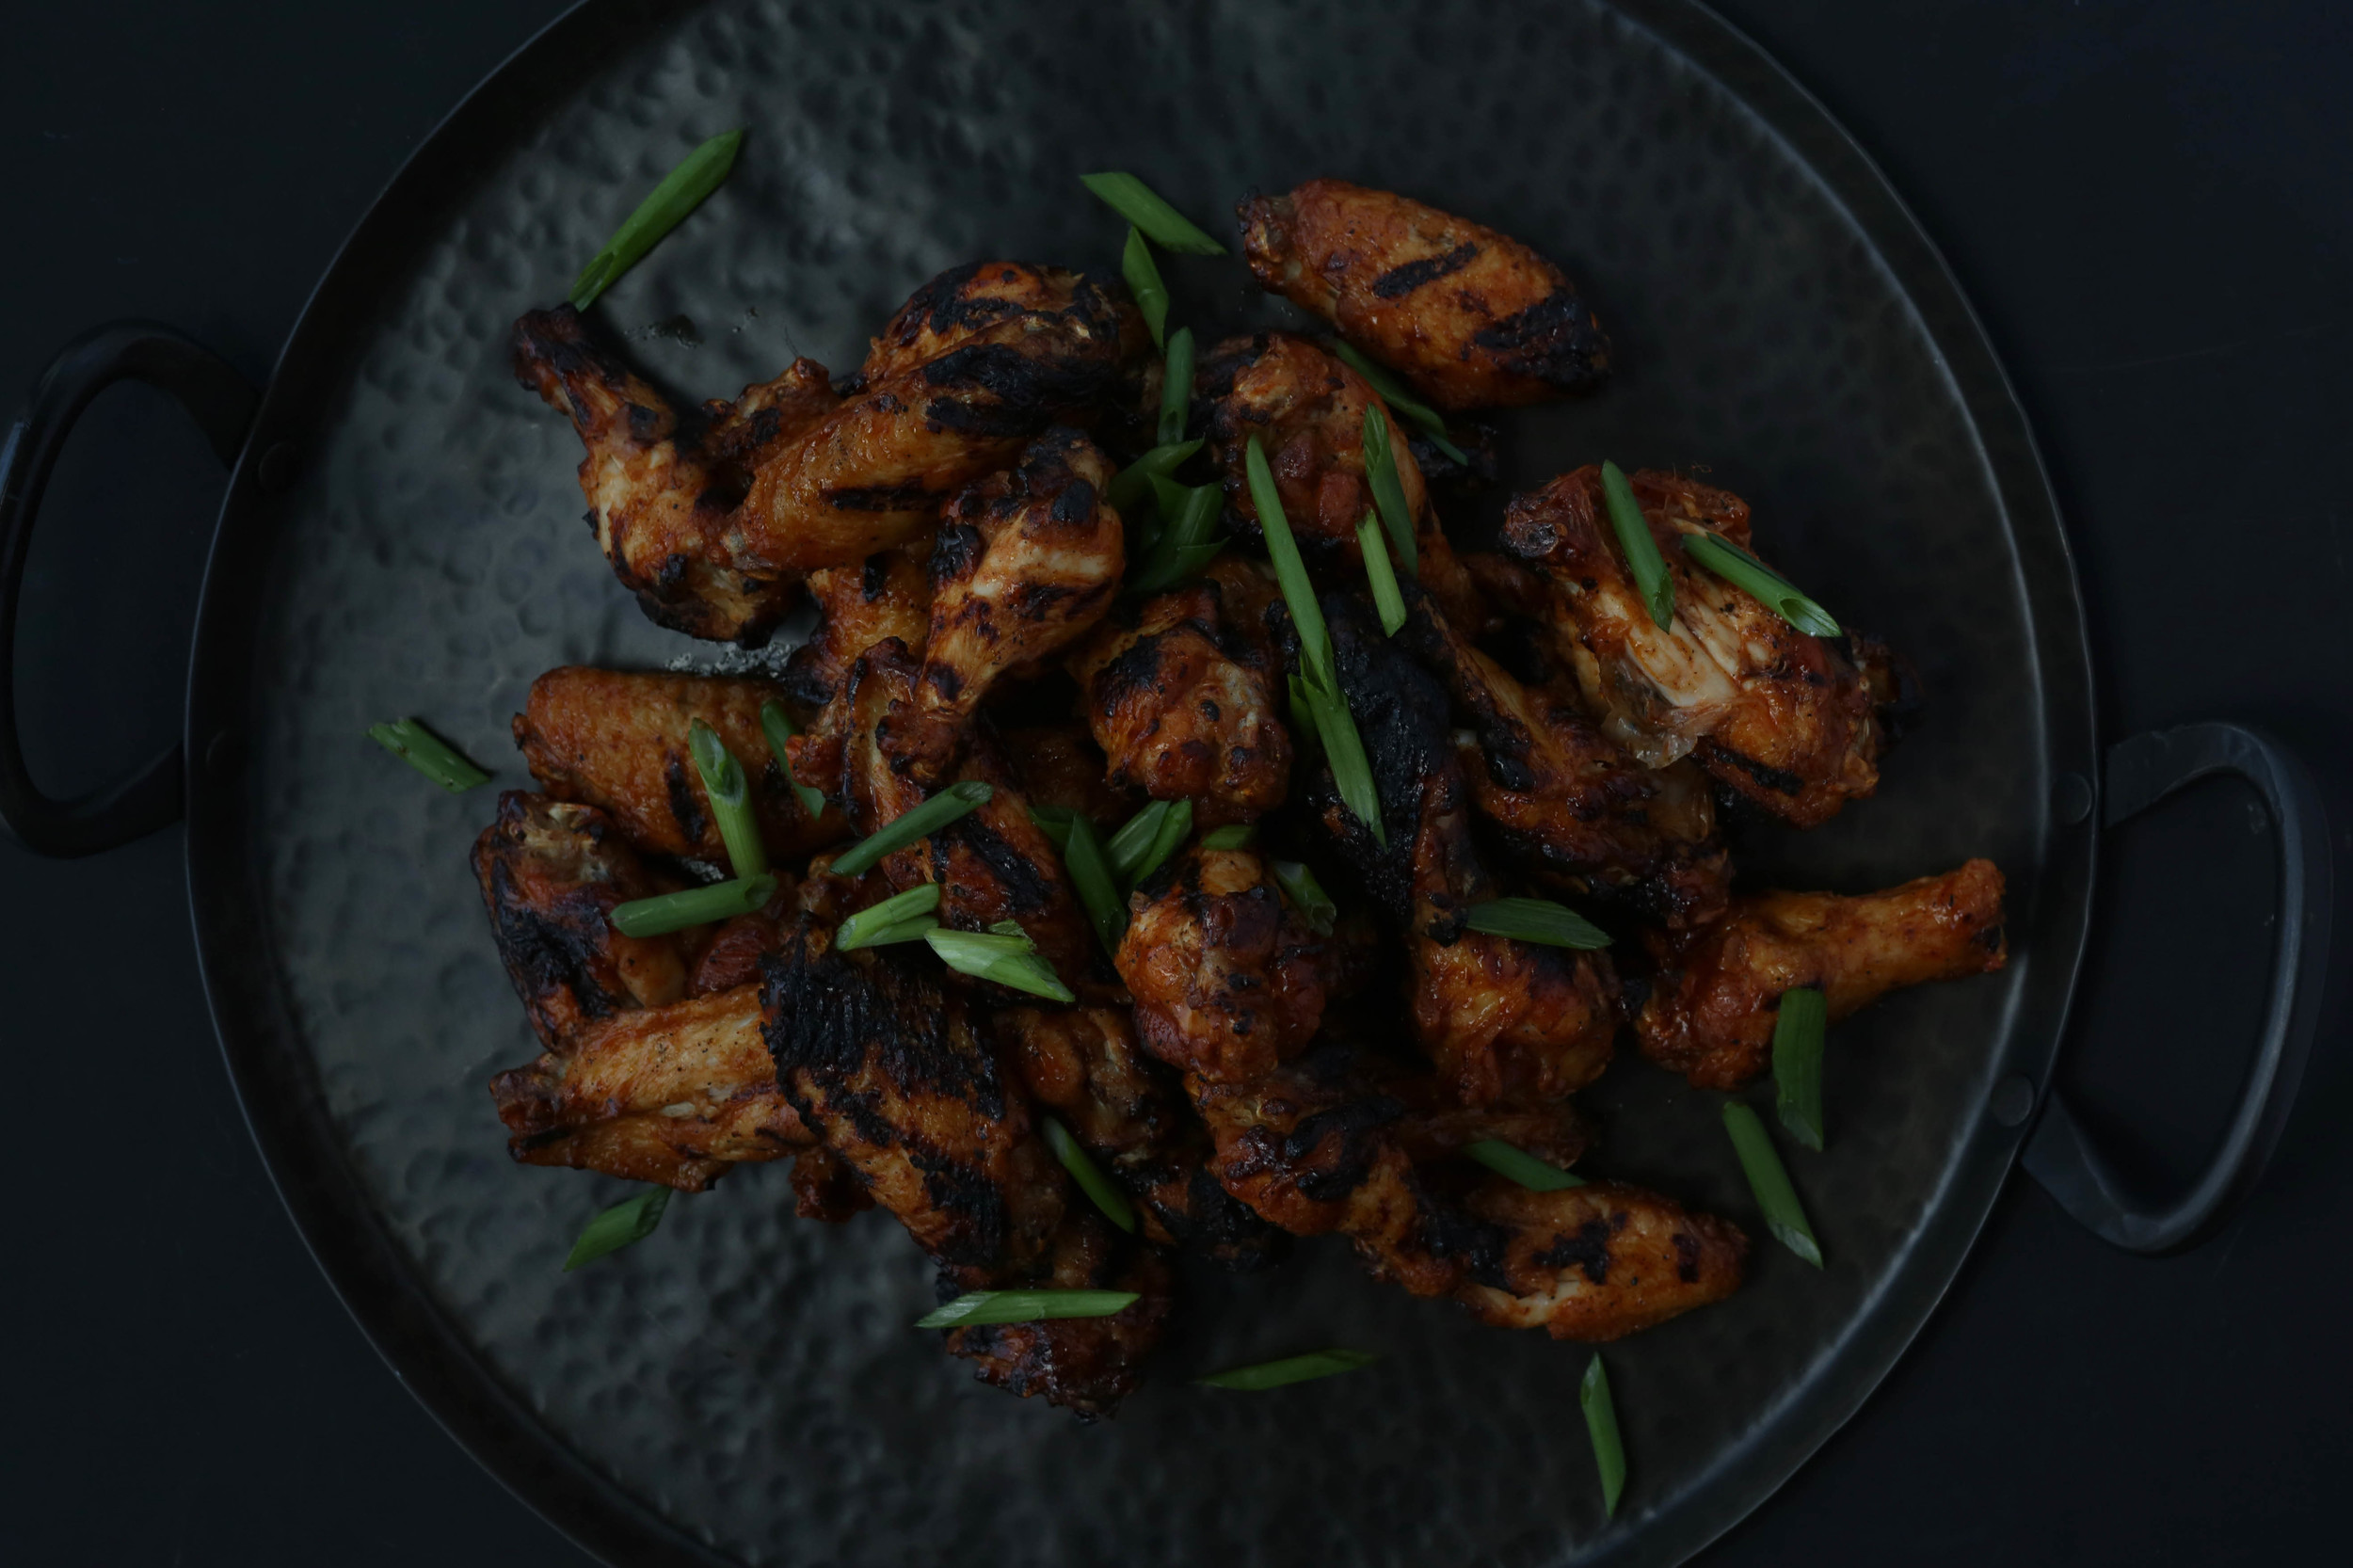 Grilled wings just speak to me.